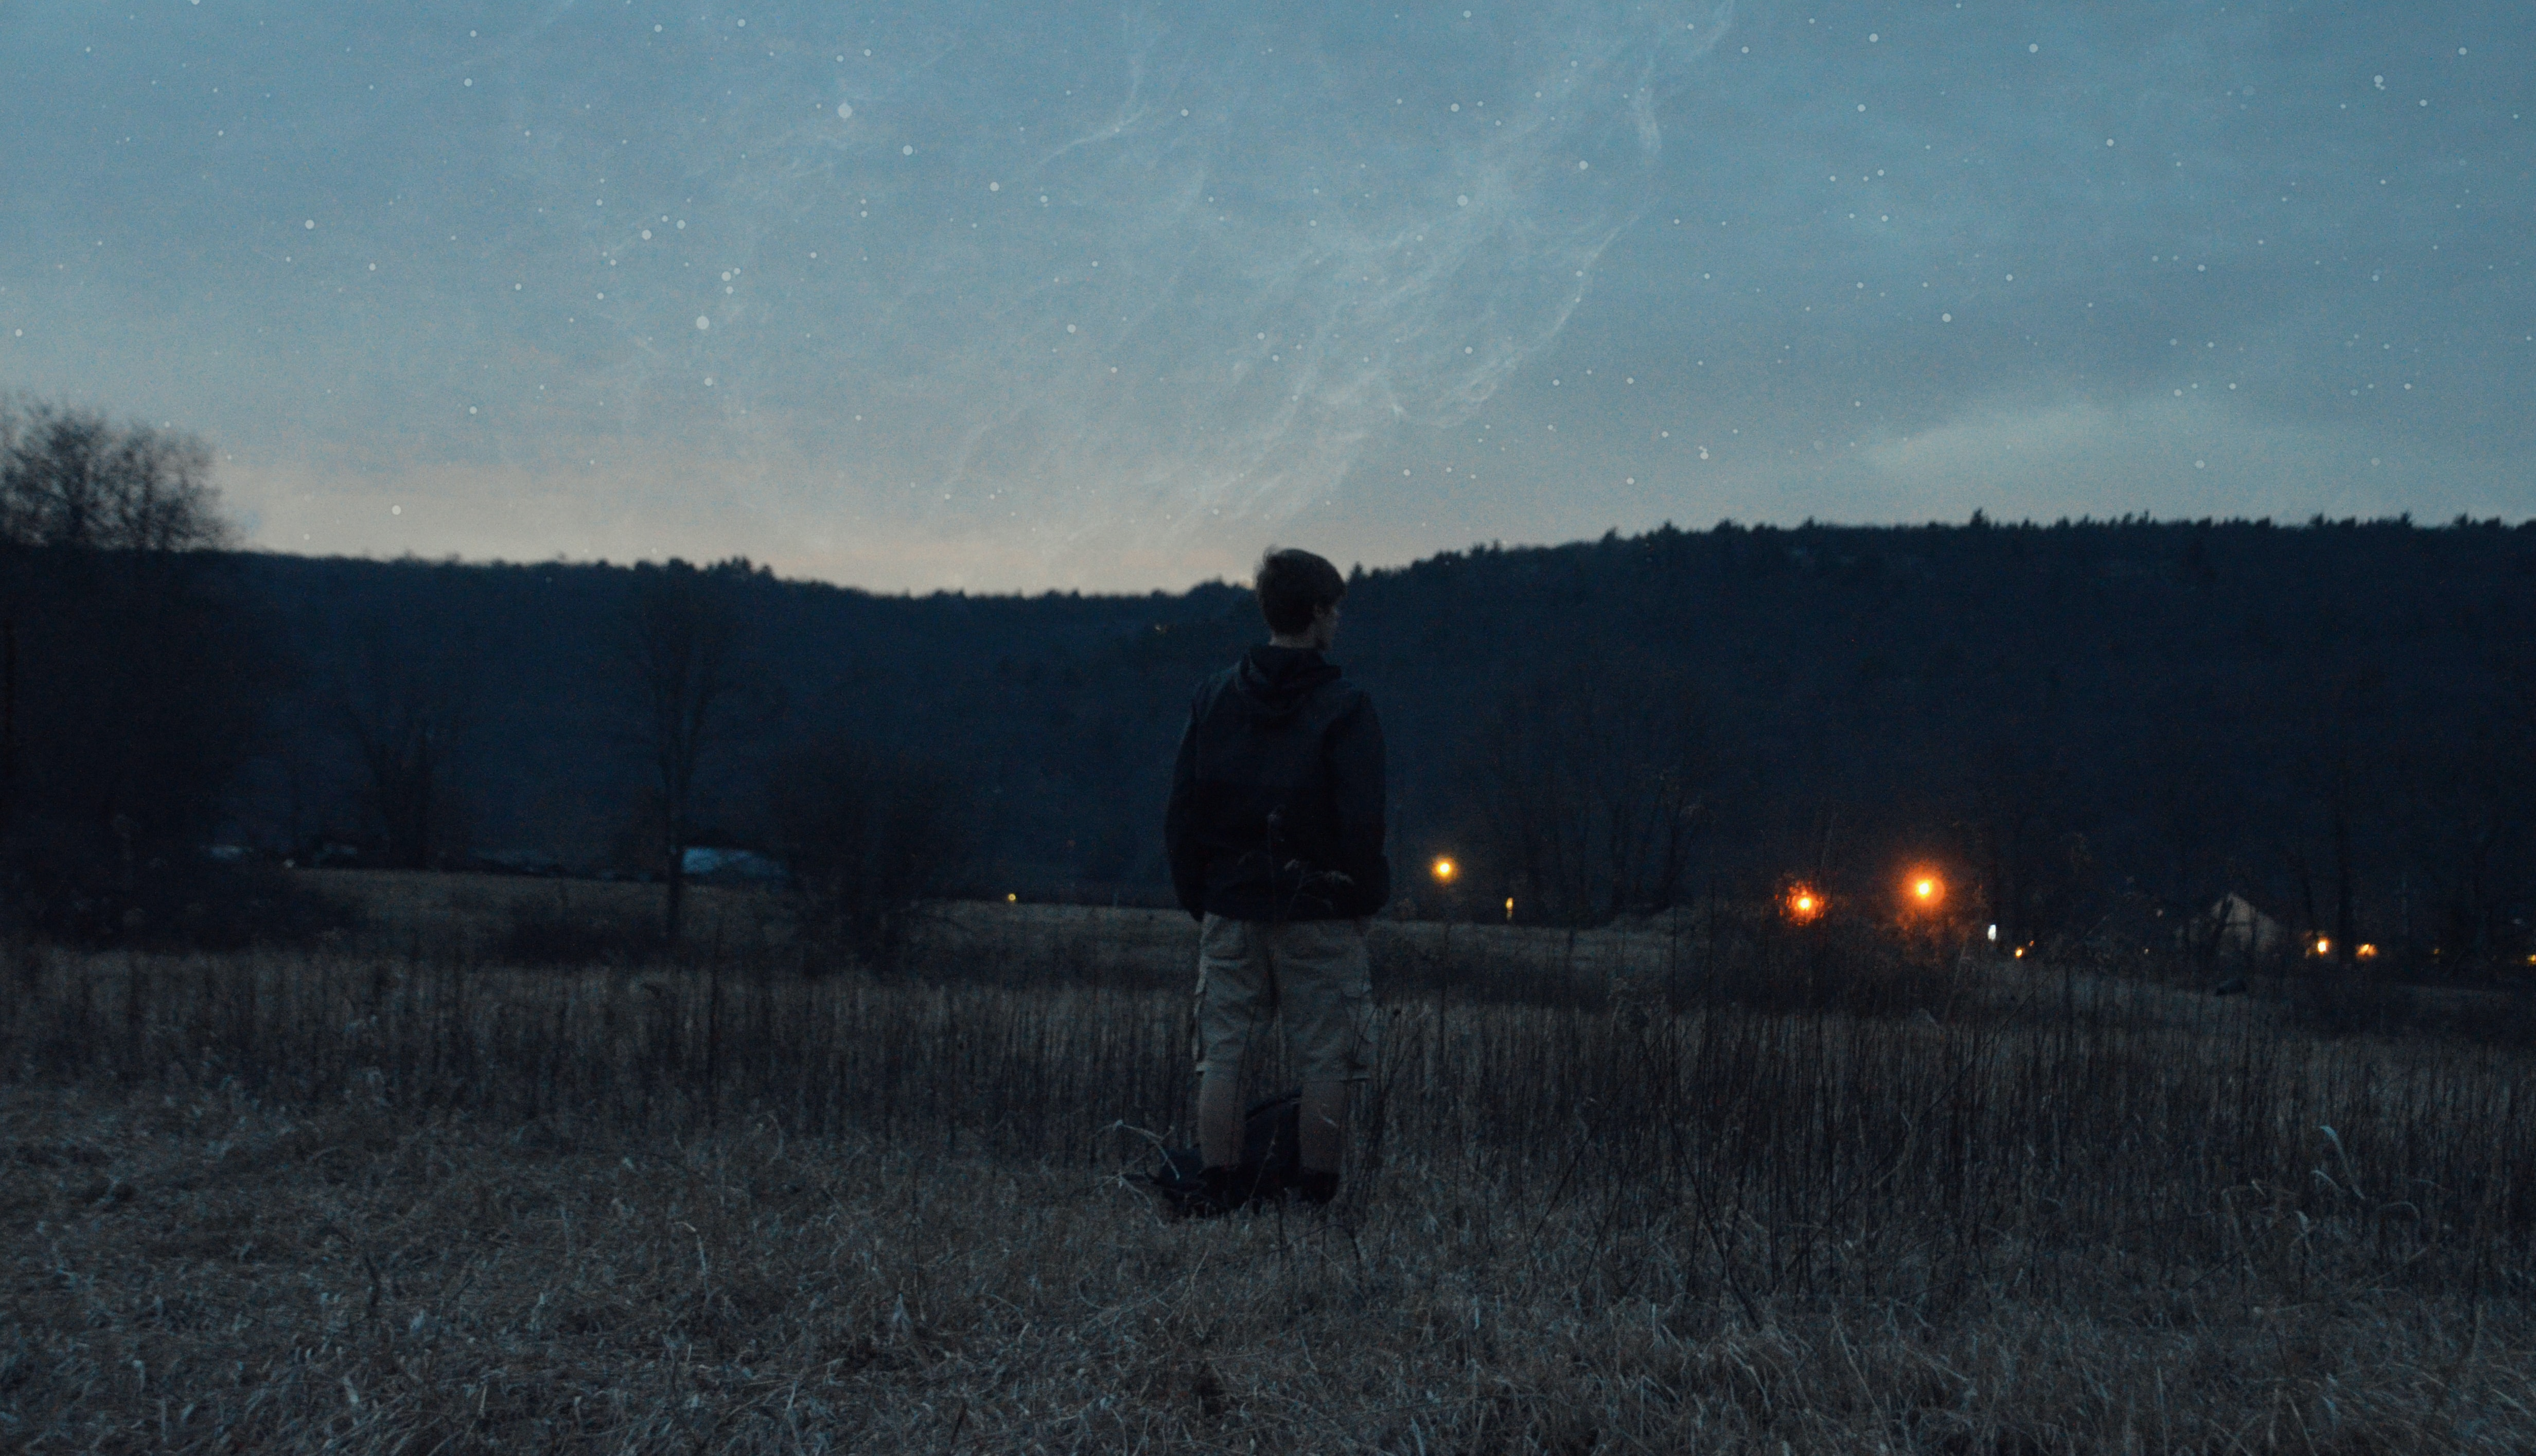 A man standing in dry grass under starry sky in the evening